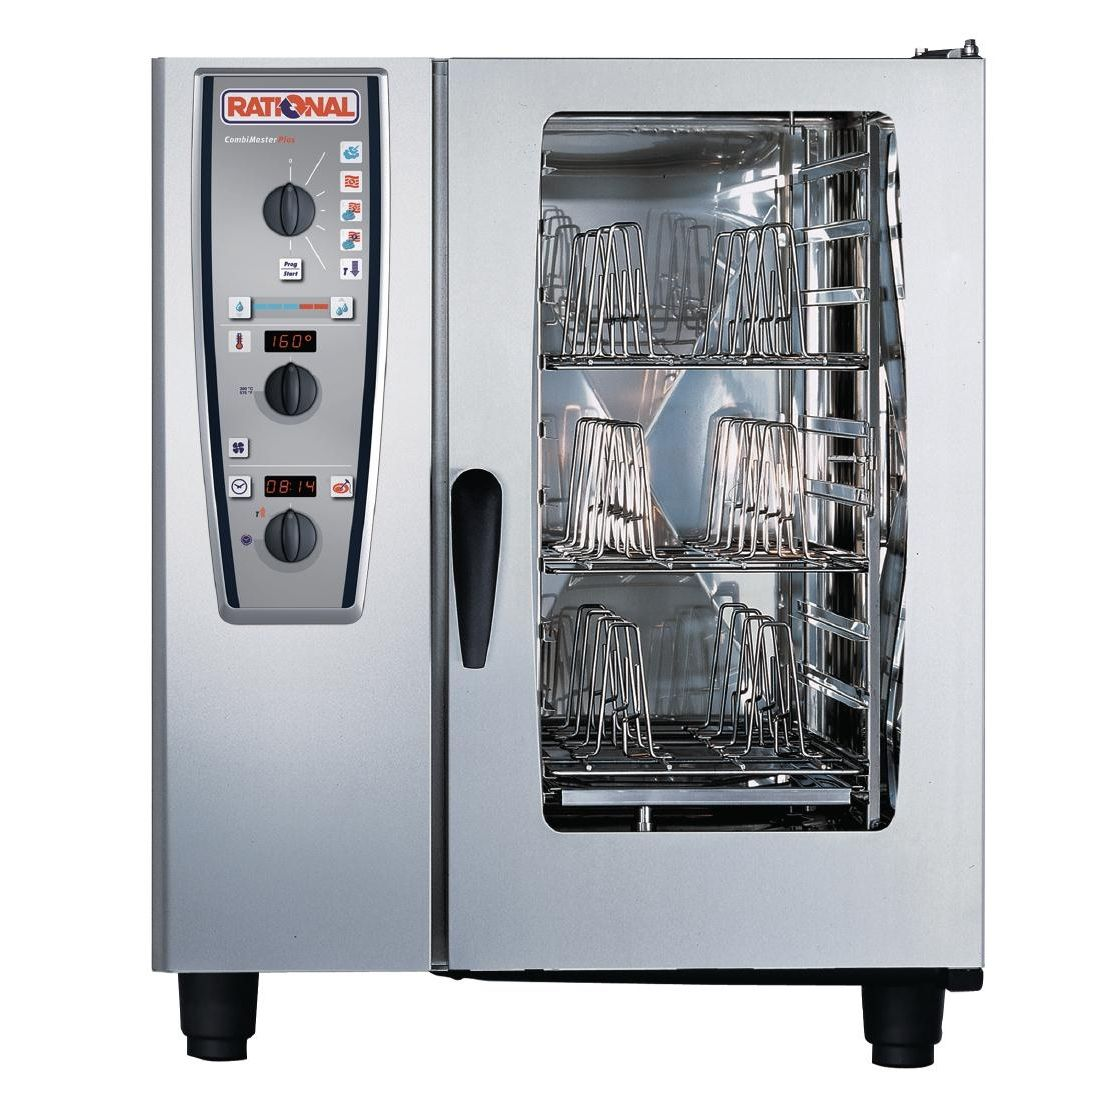 Rational Scc101g P 10 Grid Self Cooking Center 1 1gn Propane Gas Lpg Combination Commercial Kitchen Appliances Combination Oven Commercial Catering Equipment